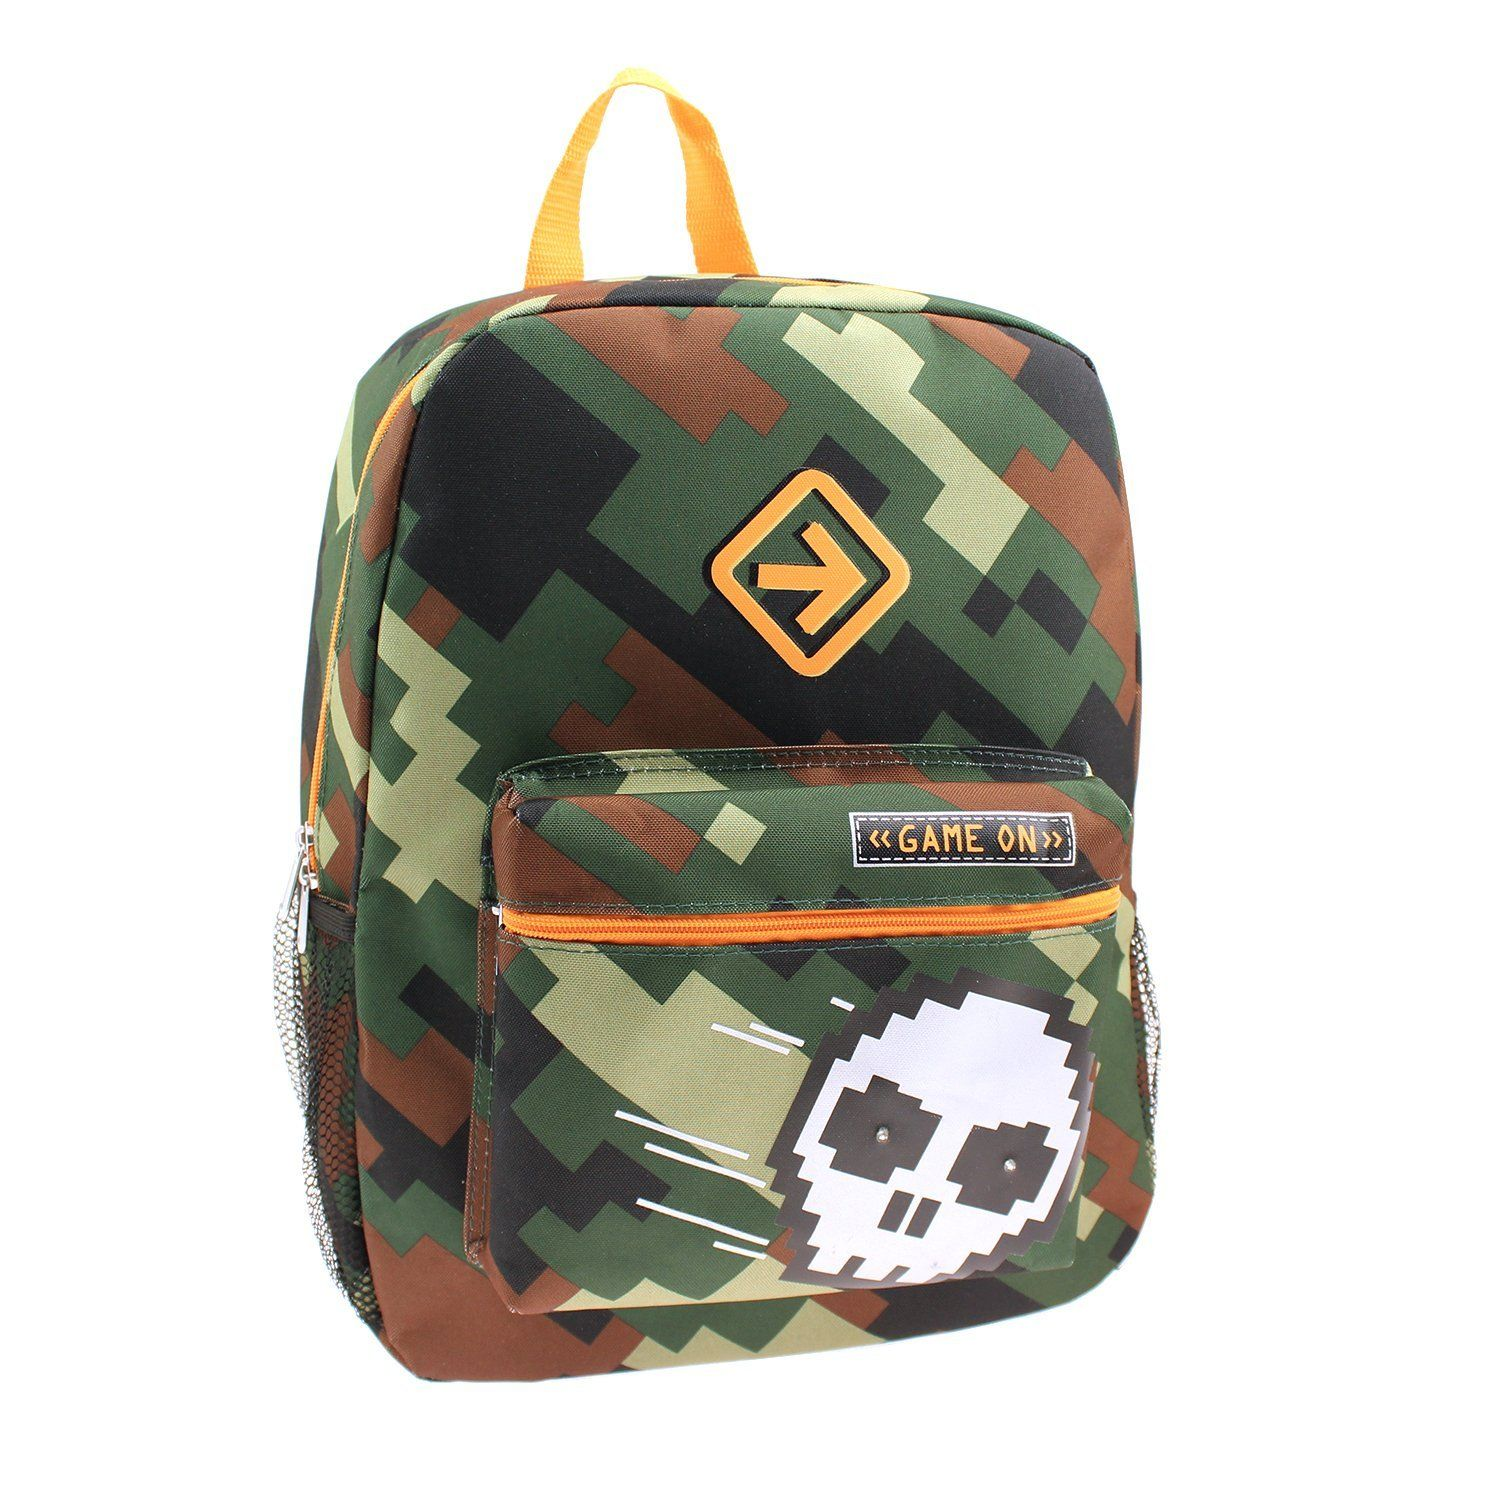 Boys Skull 'Game On' 16' Light up Backpack You can get